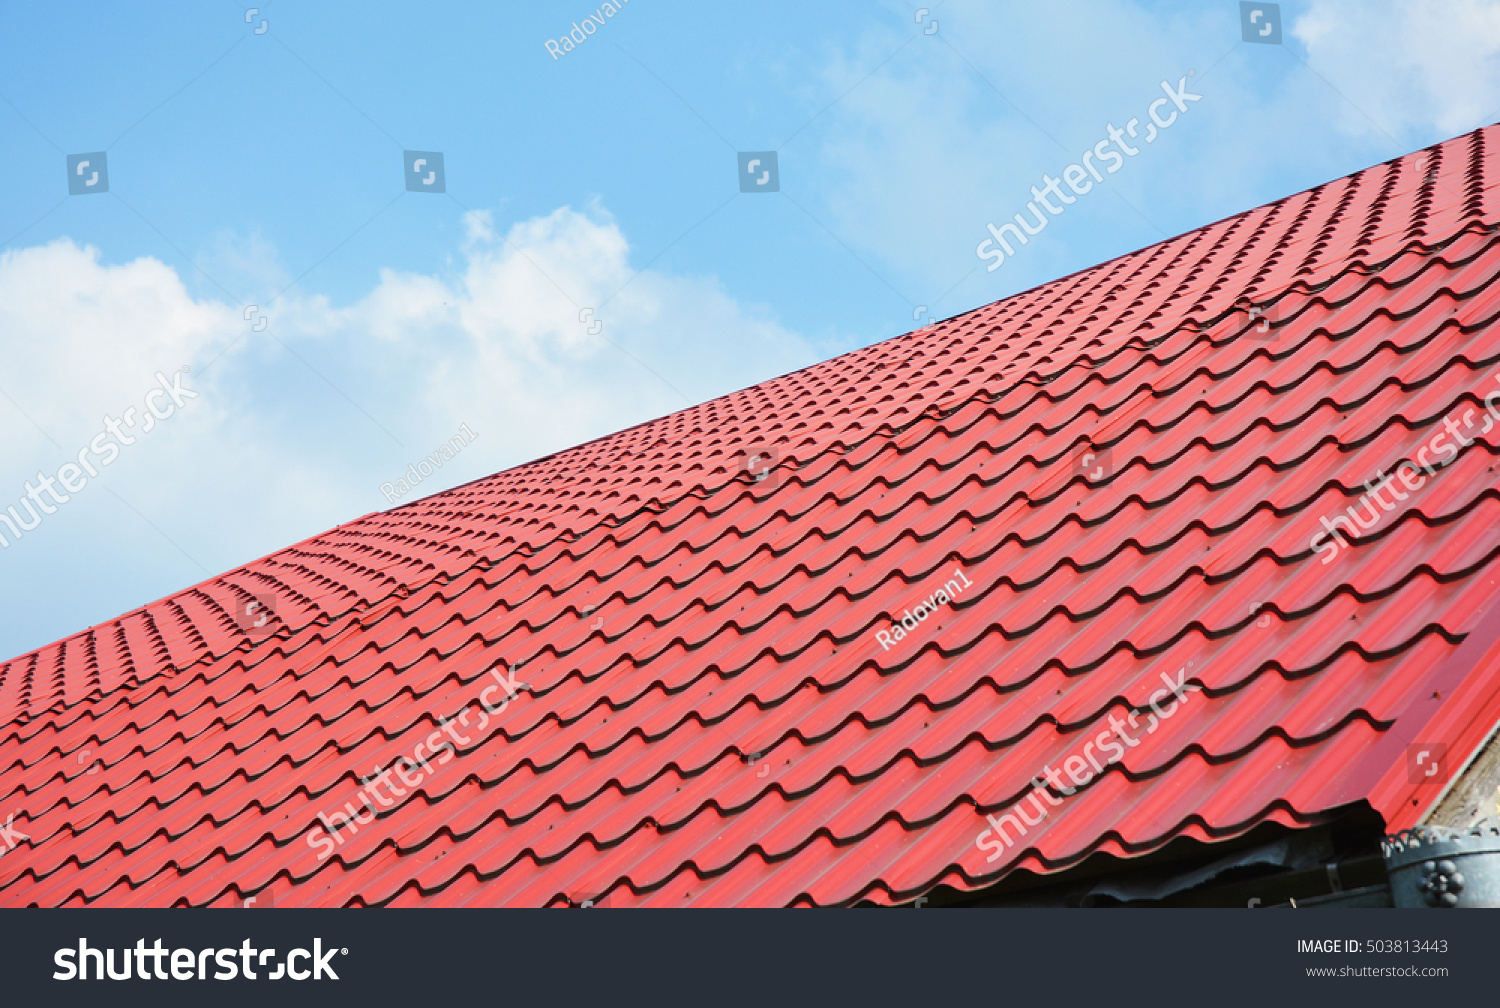 Red Metal Roof Tiles. Metal Roof Shingles   Roofing Construction, Roofing  Repair.